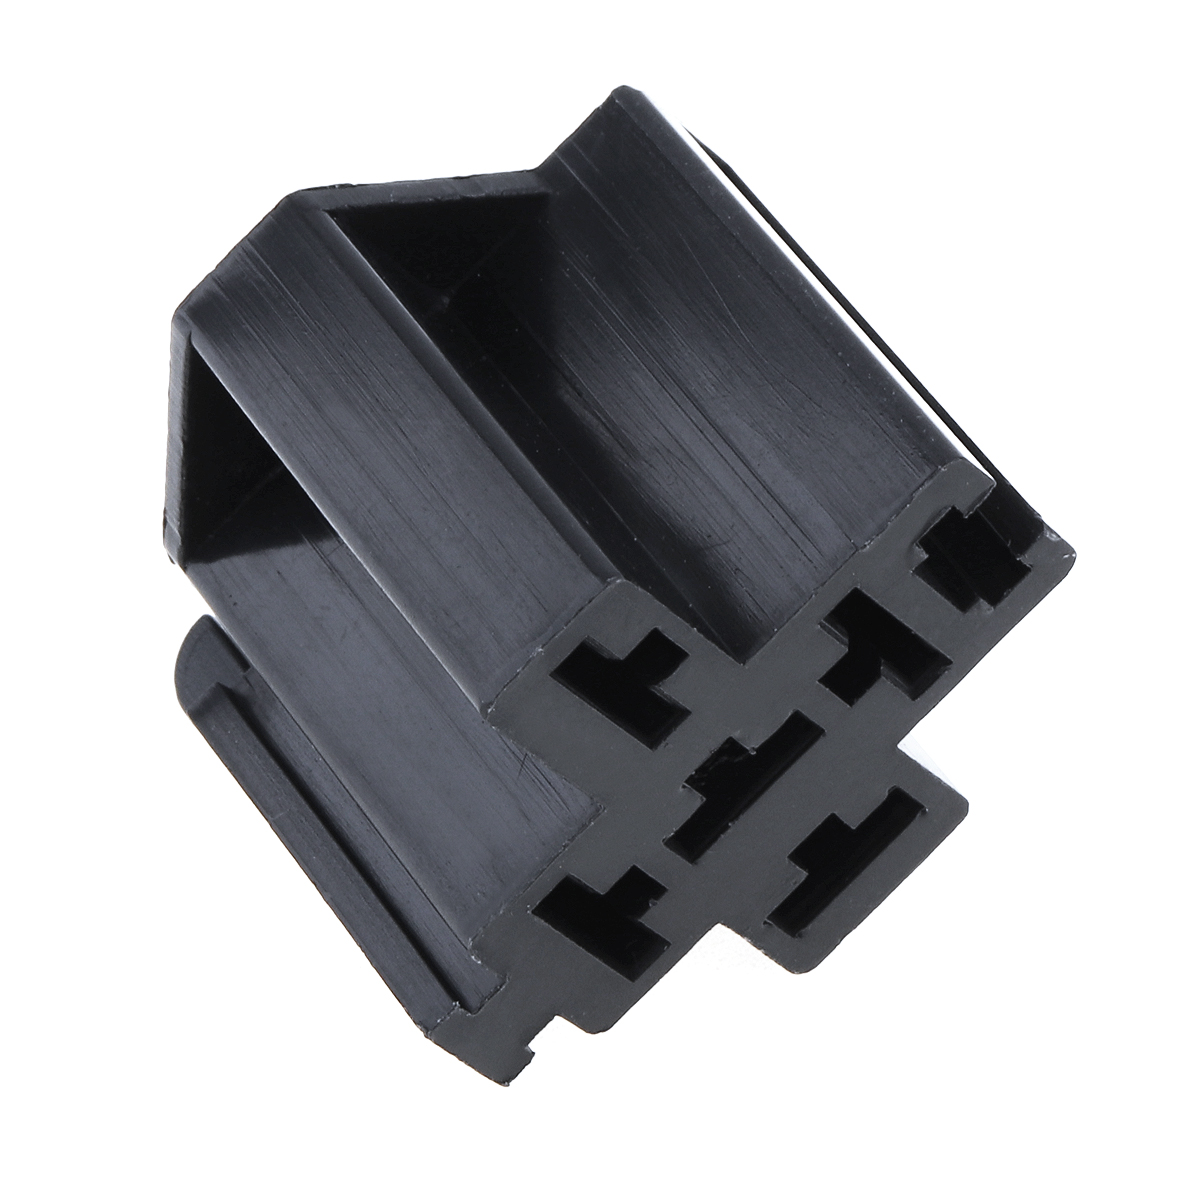 6-3mm-Car-Vehicle-5-Pin-Relay-Socket-Connector-Holder-with-5pcs-Copper-Terminal thumbnail 6